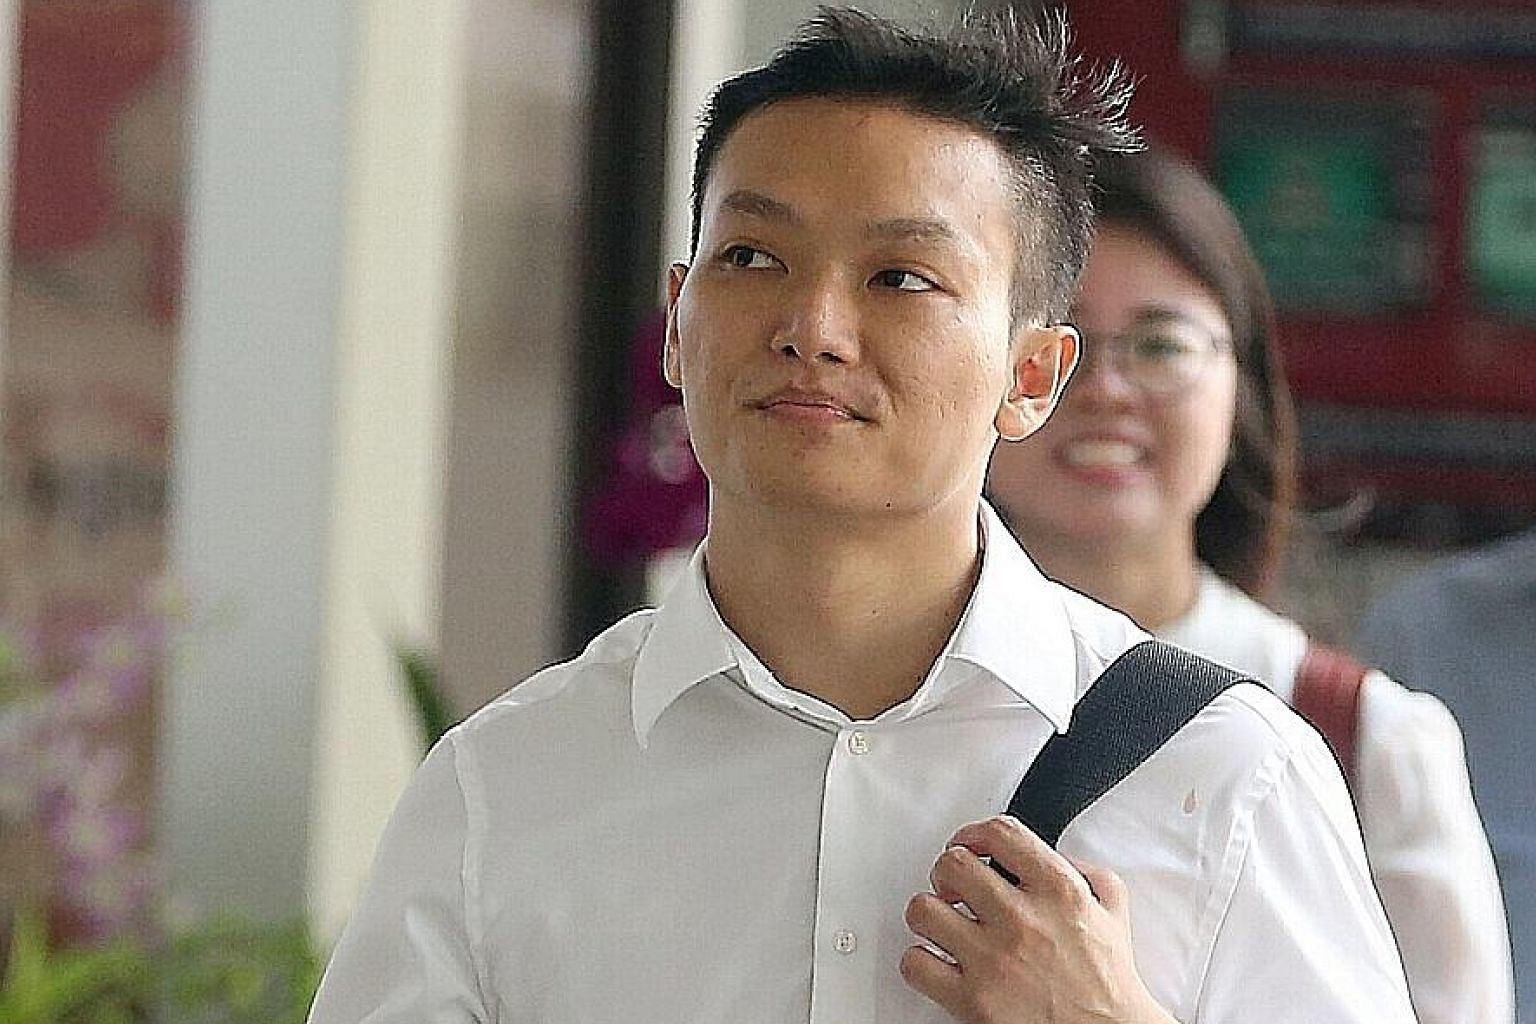 The driver, Brian Li Xian Cheng, was yesterday jailed for two weeks and disqualified from driving for five years.